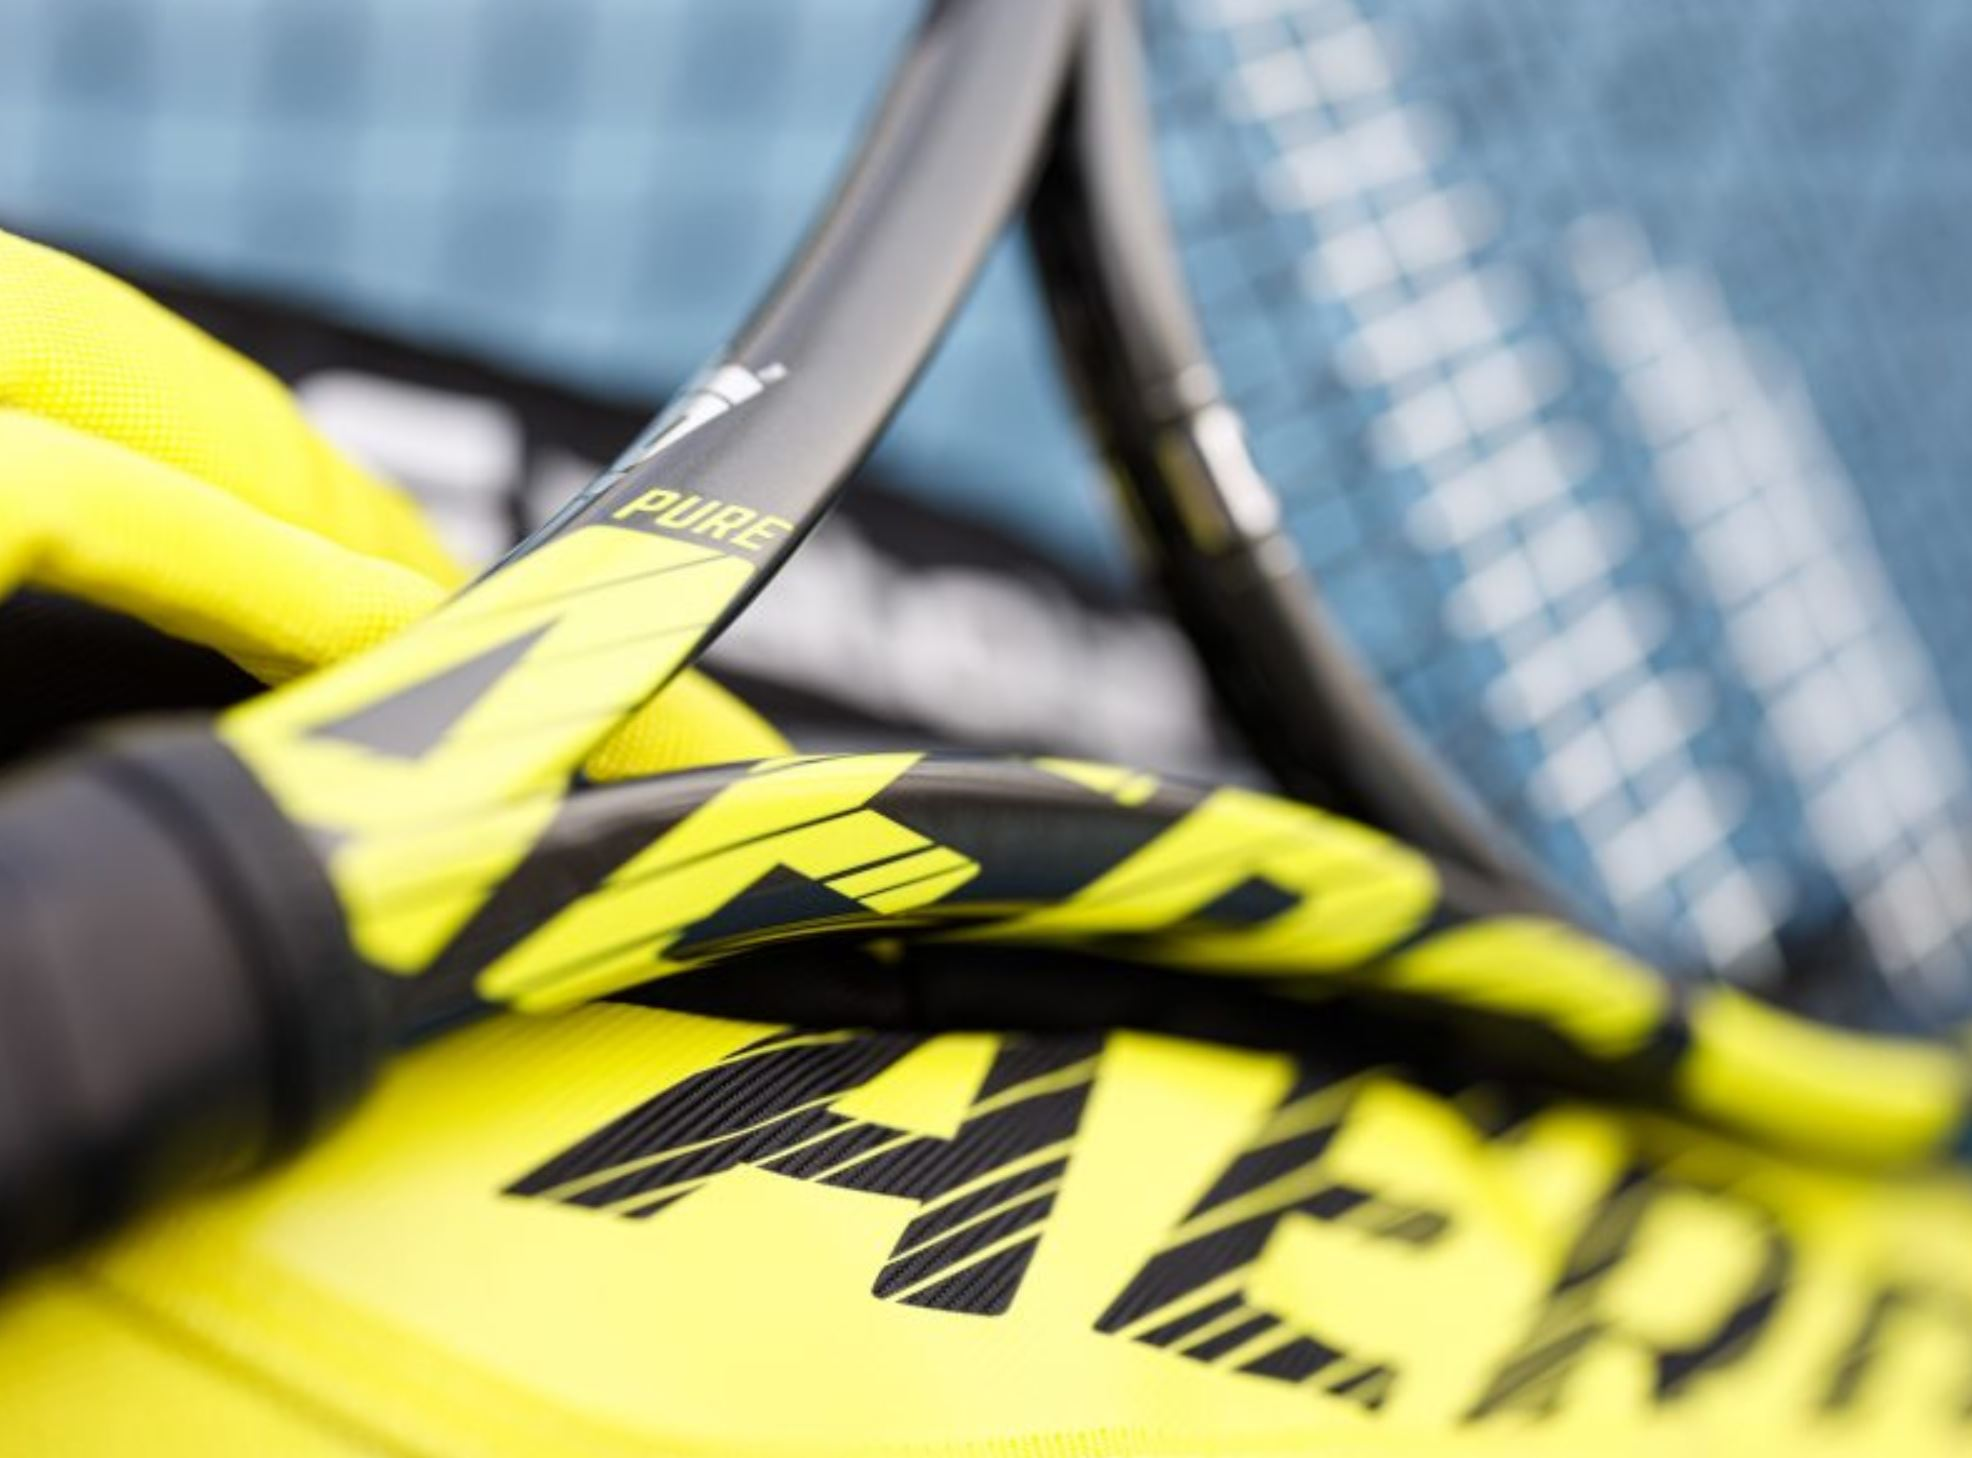 Racquet Review: Babolat Pure Aero VS